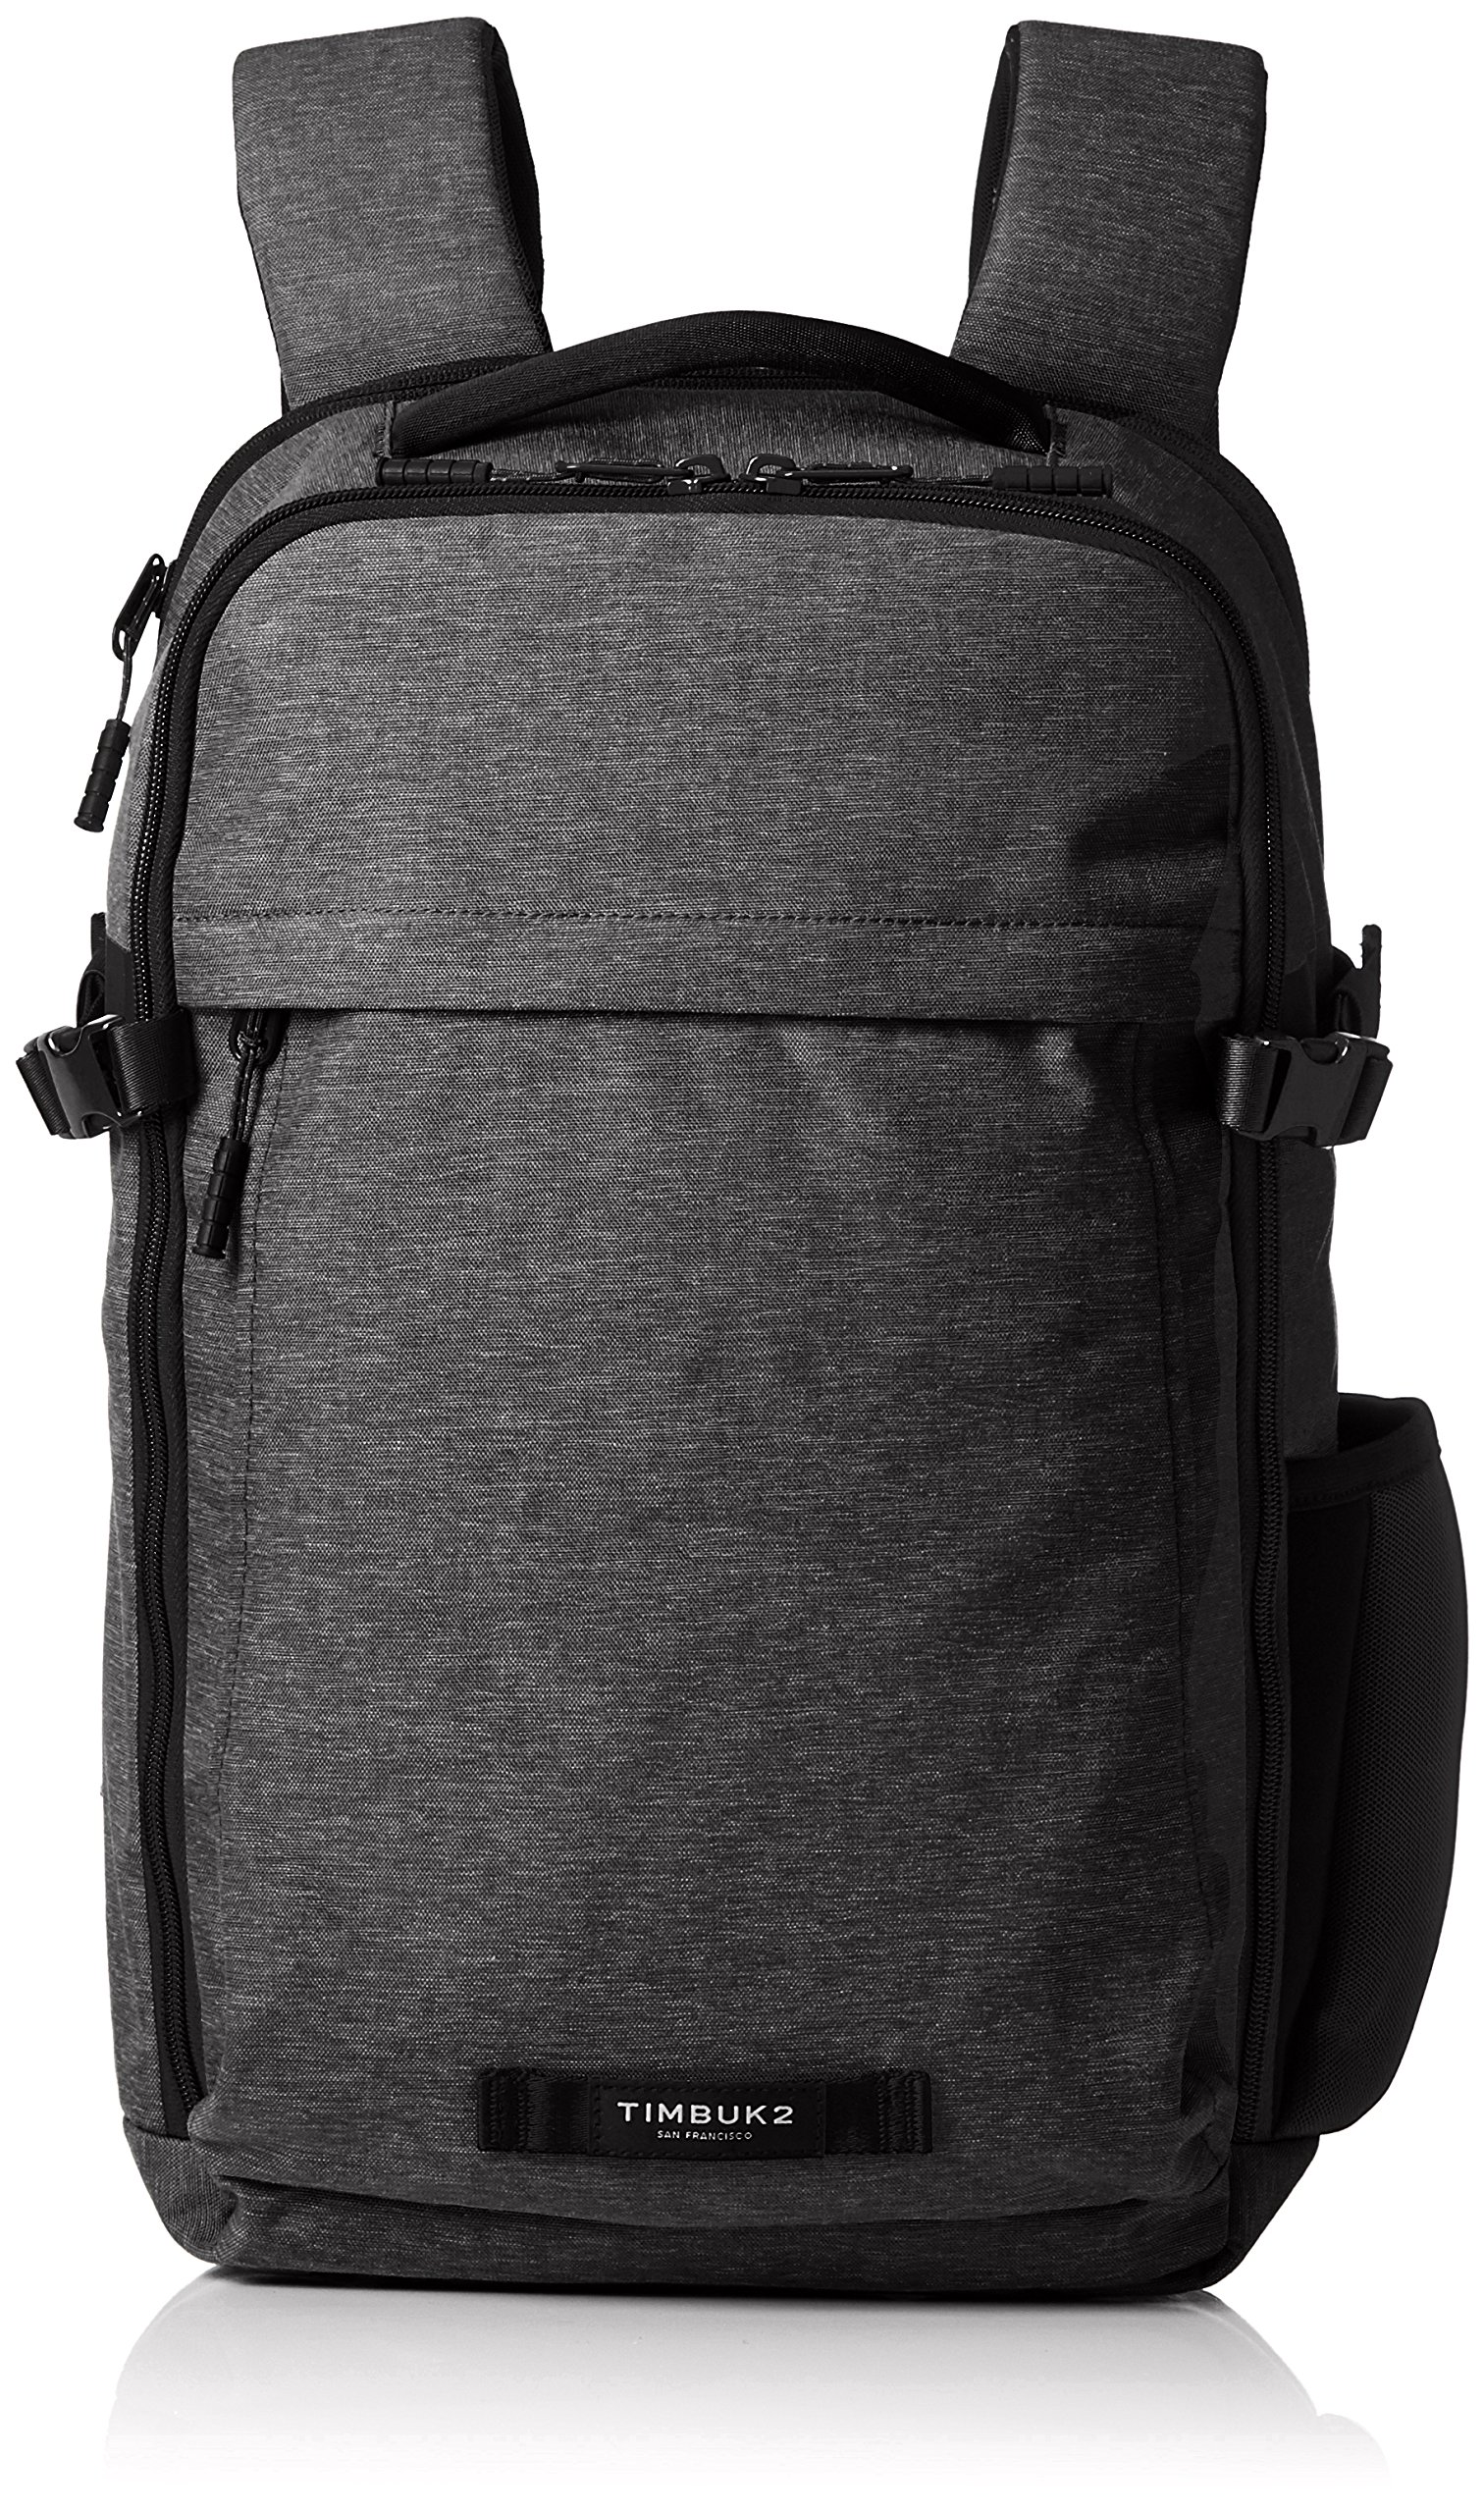 Timbuk2 The Division Pack, Jet Black Static, One Size by Timbuk2